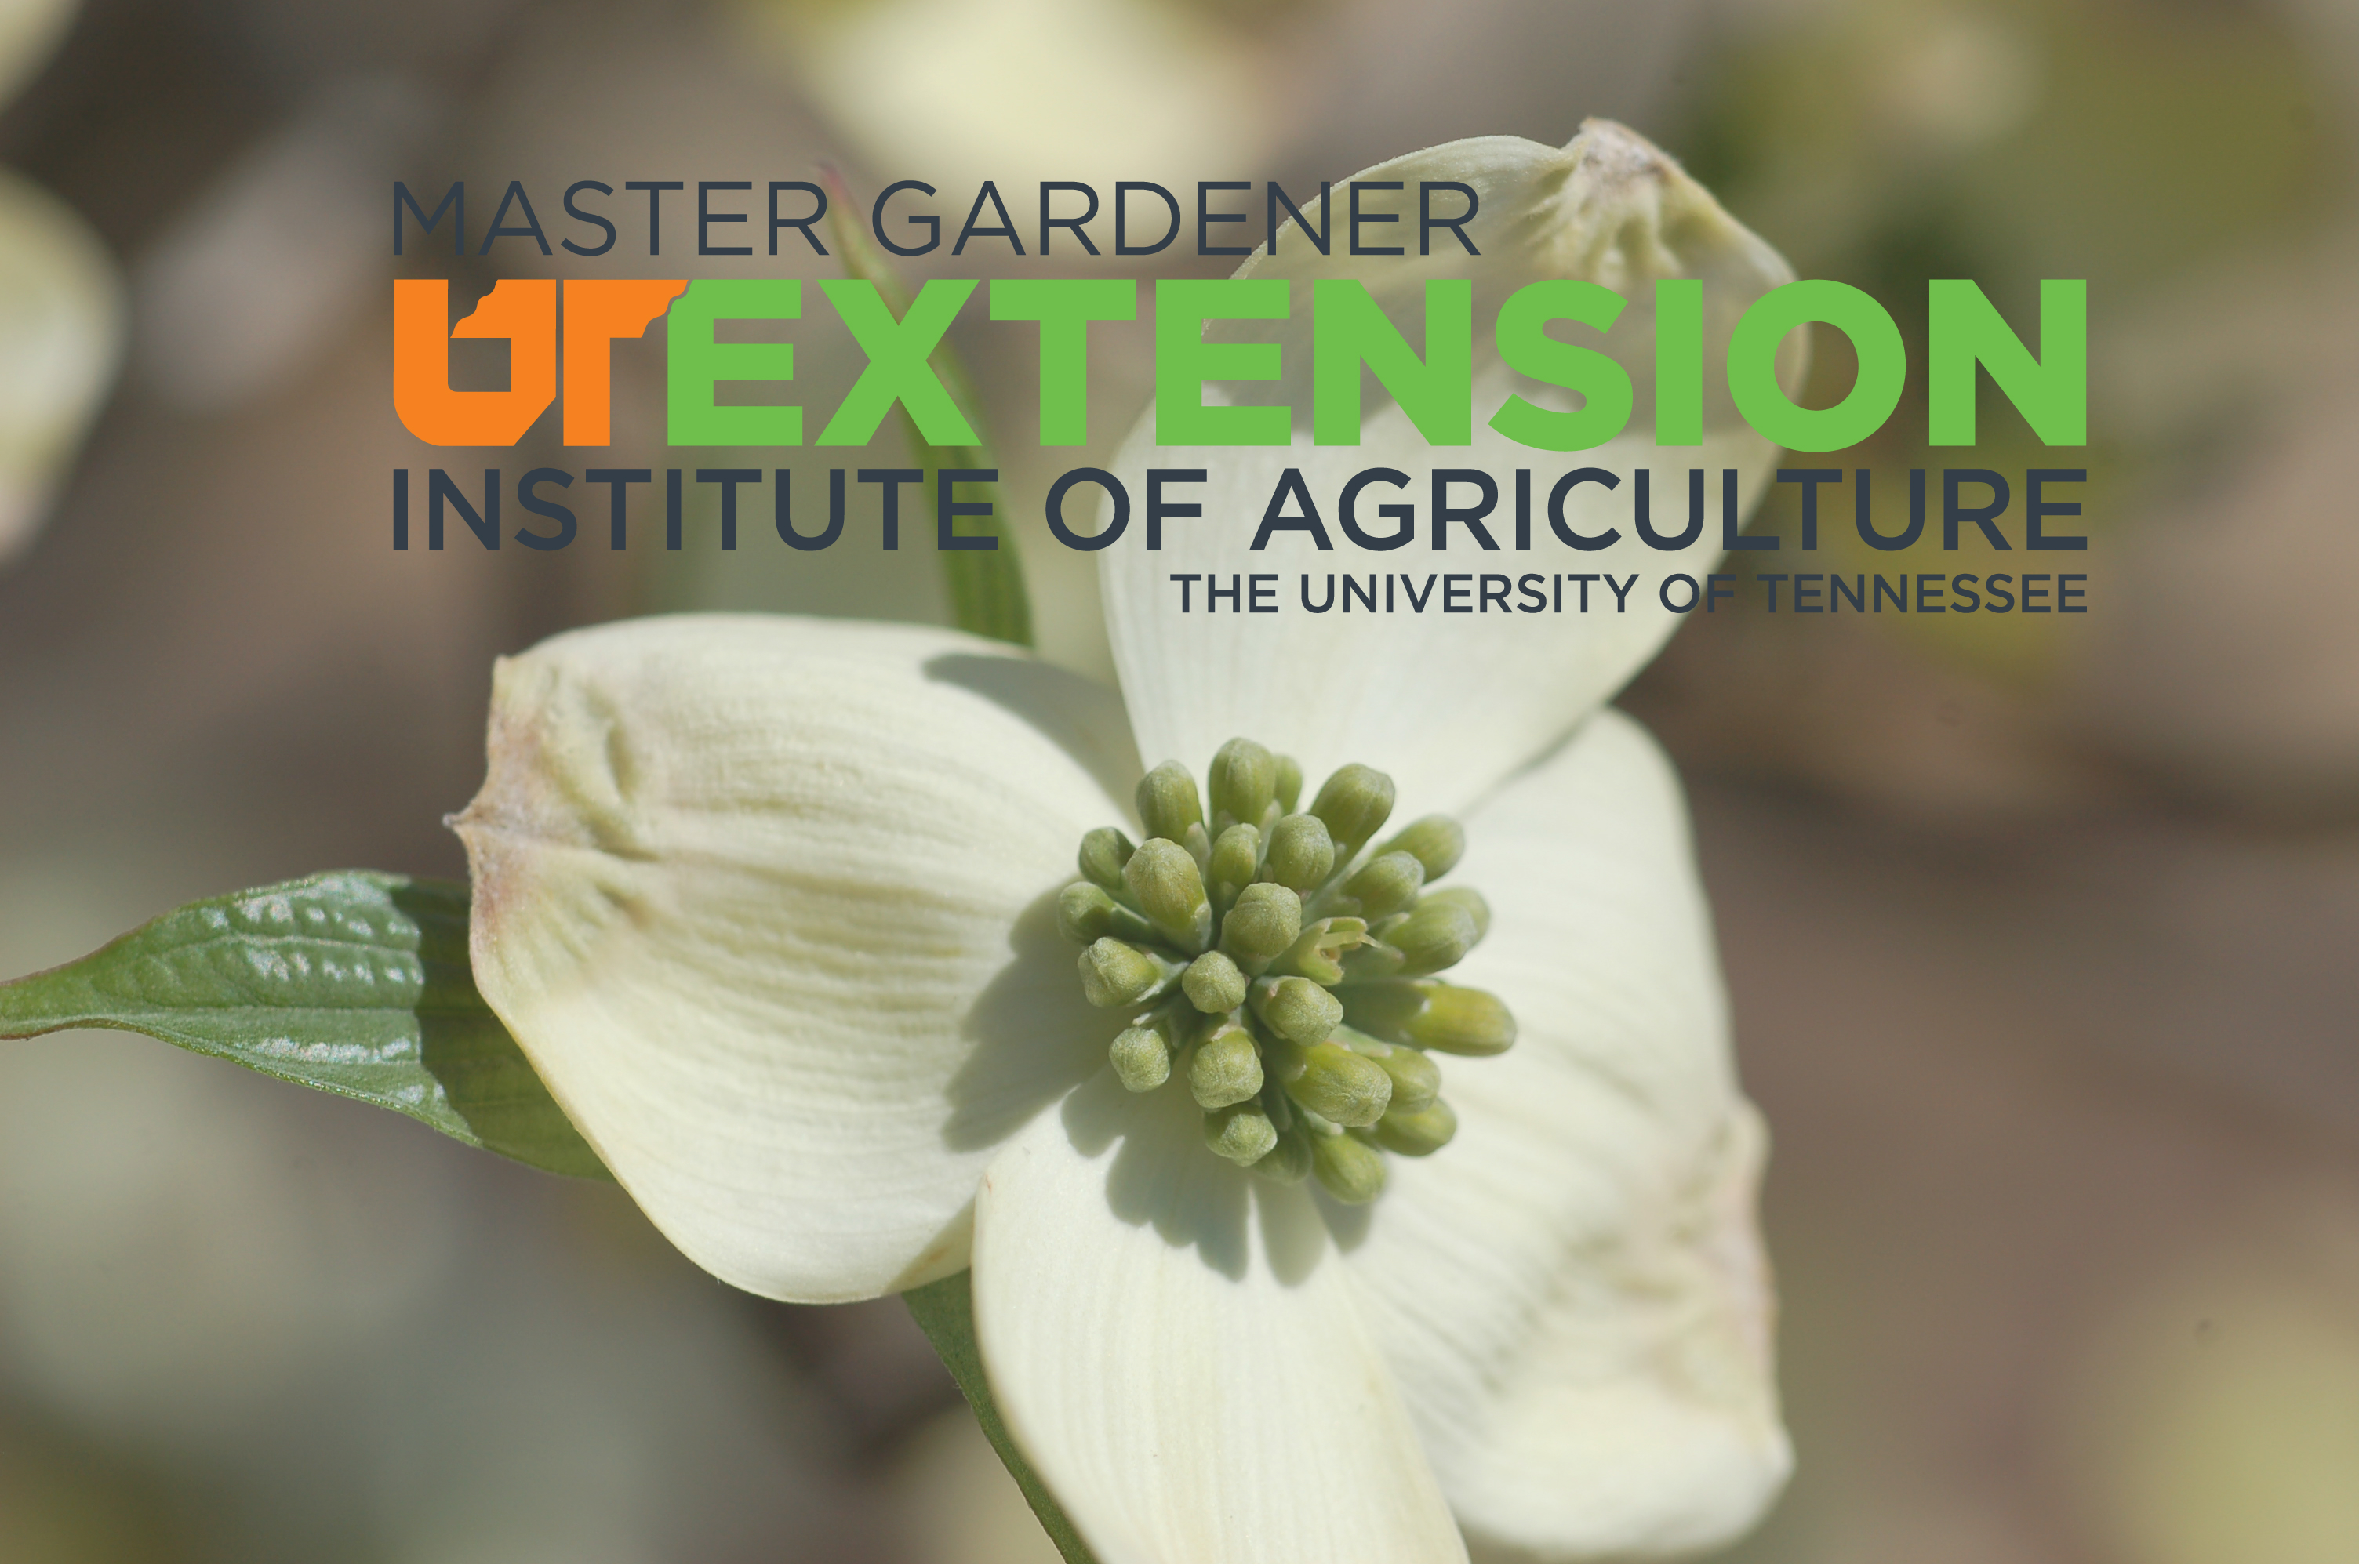 Tennessee Extension Master Gardener Program